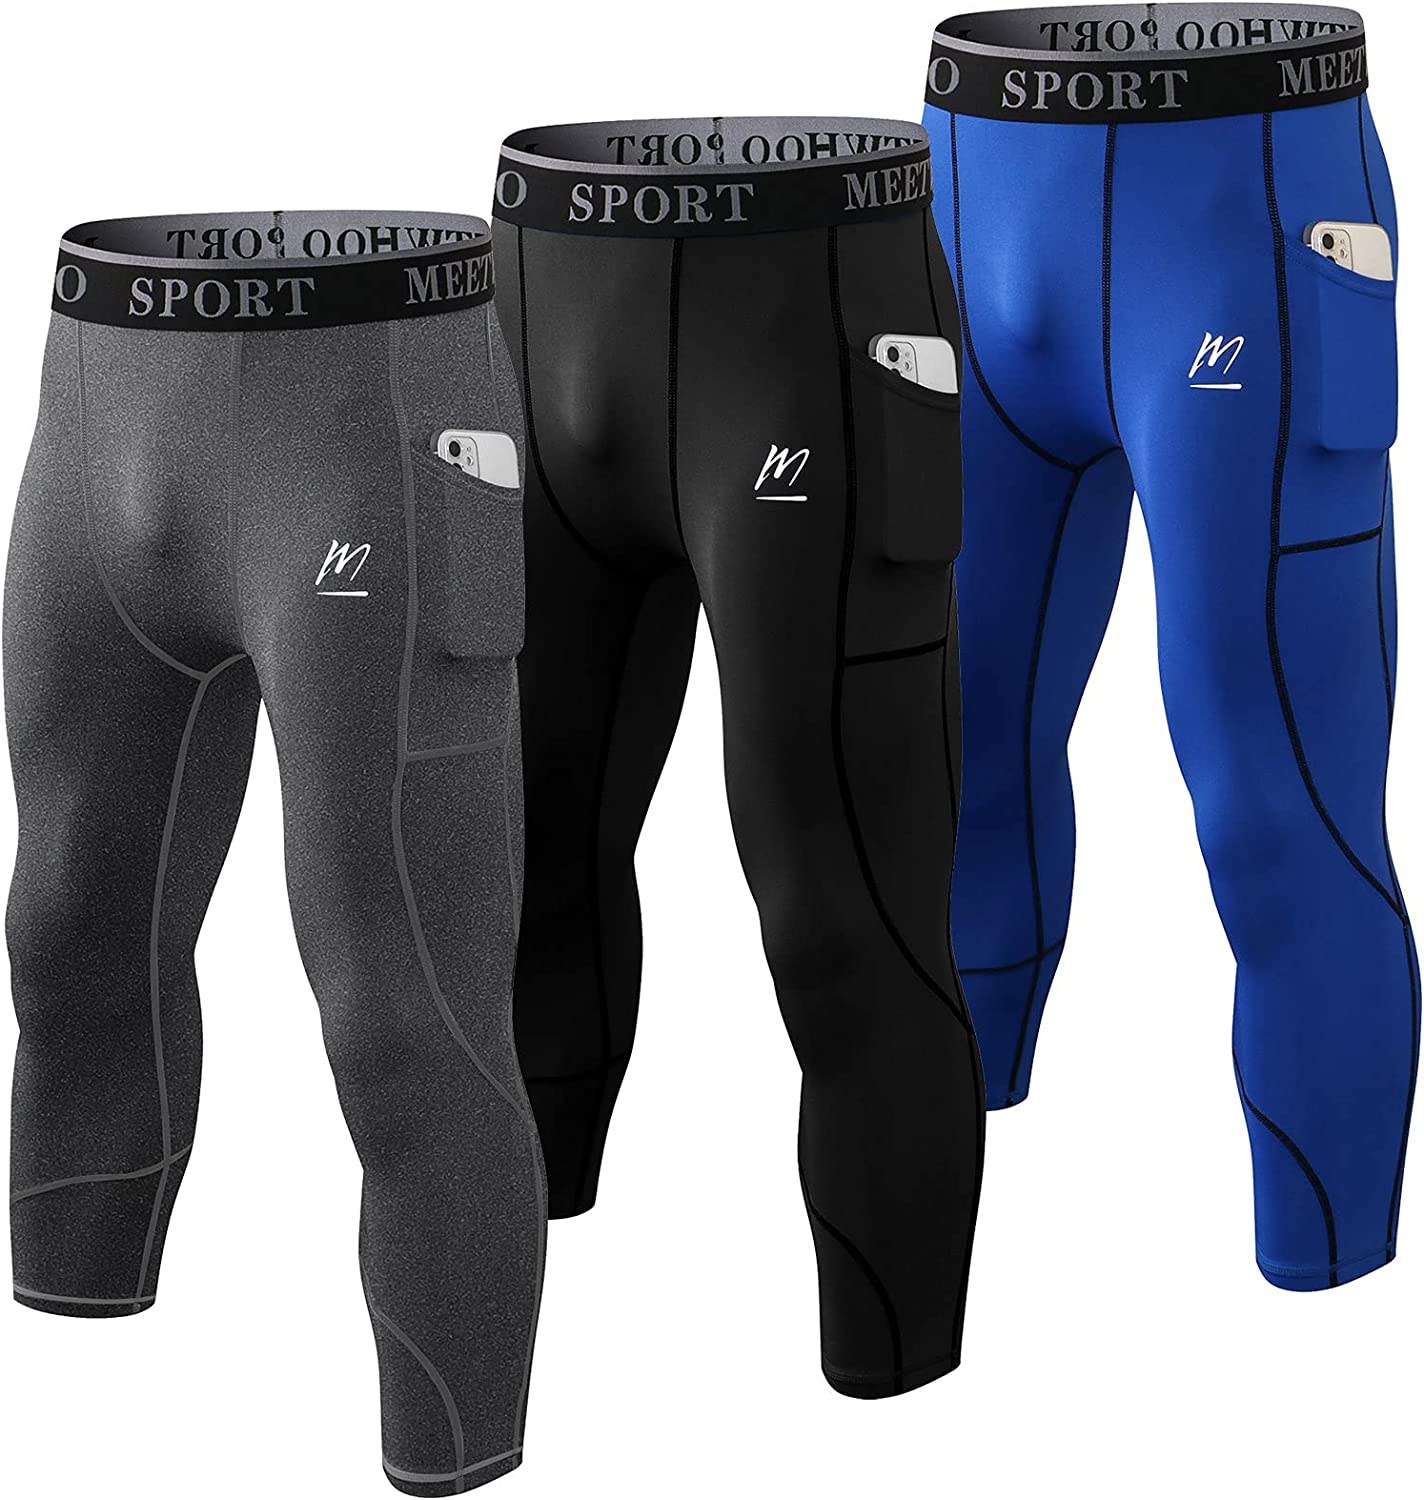 MEETWEE Max 50% OFF Men's Compression Pants Cool Athletic Recommendation Tight Running Dry